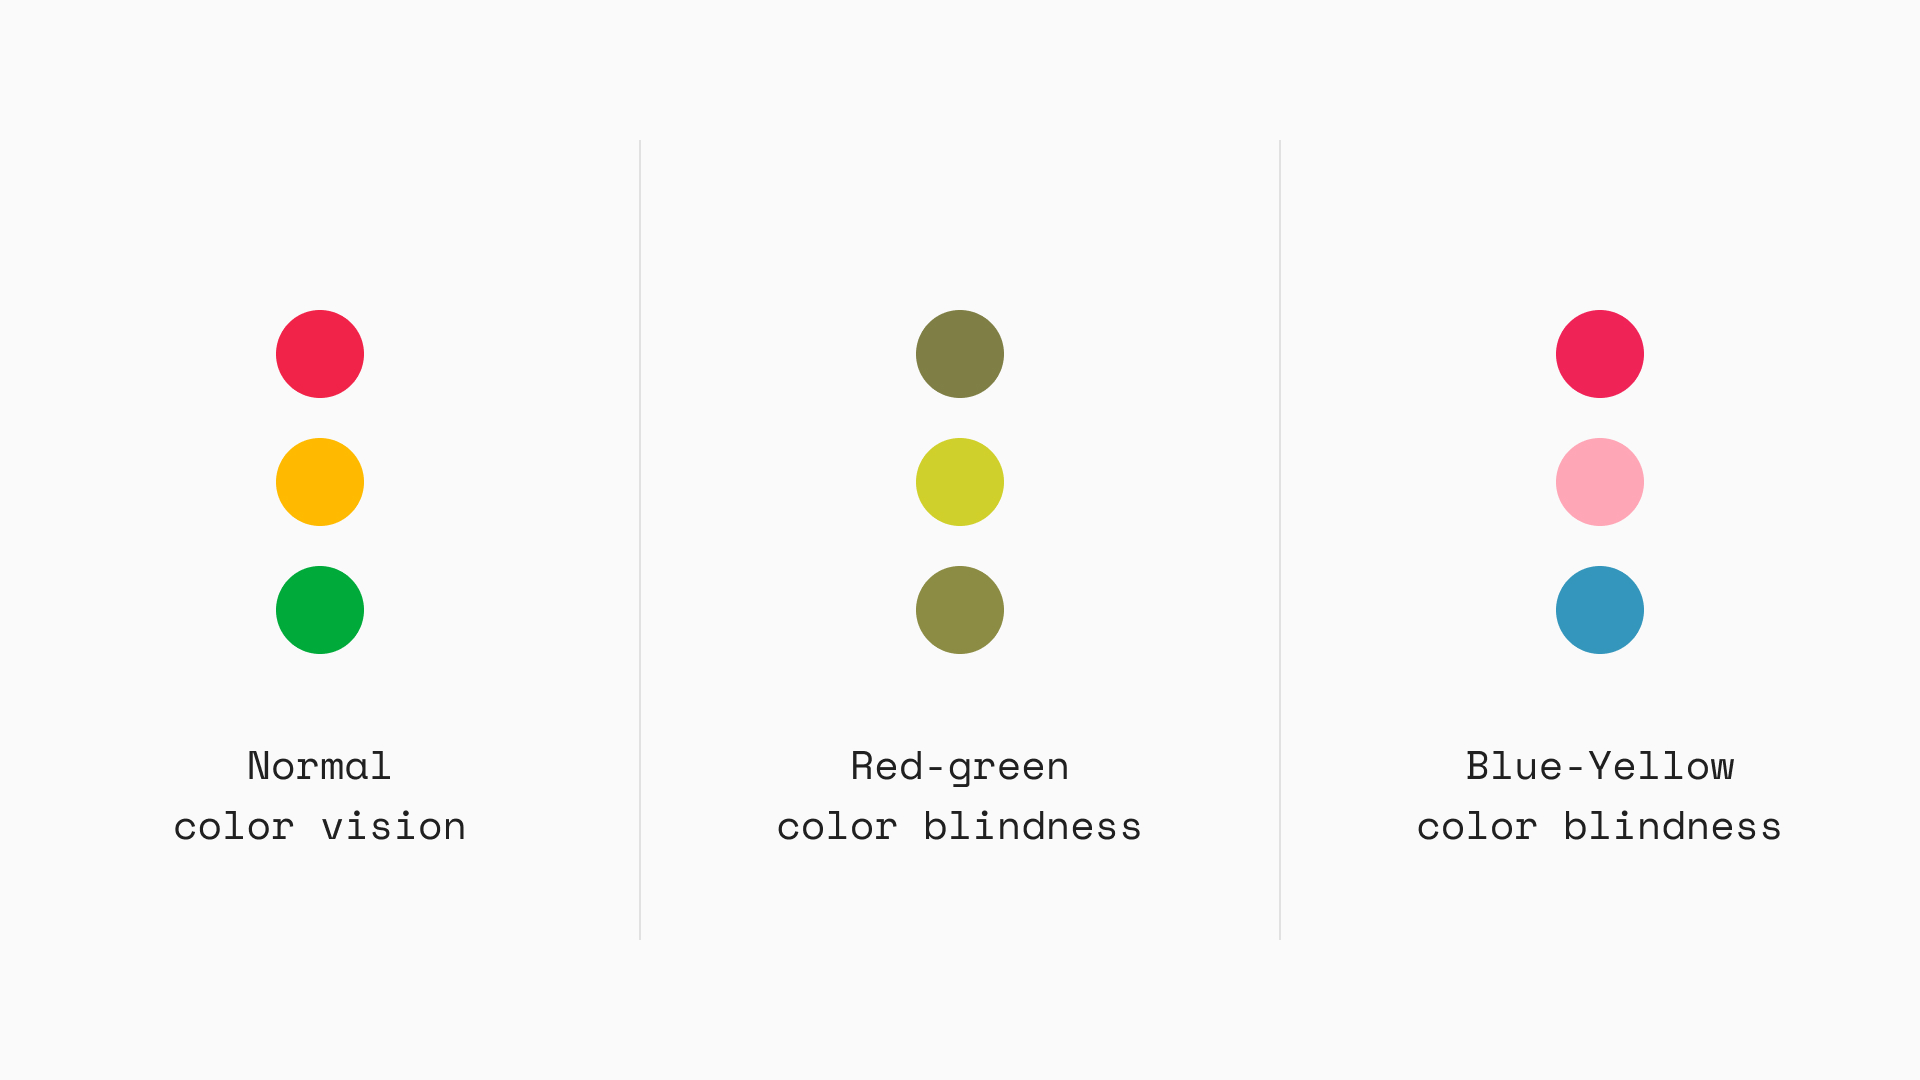 An example image of a traffic light color scheme and how people with various color blindness see it.